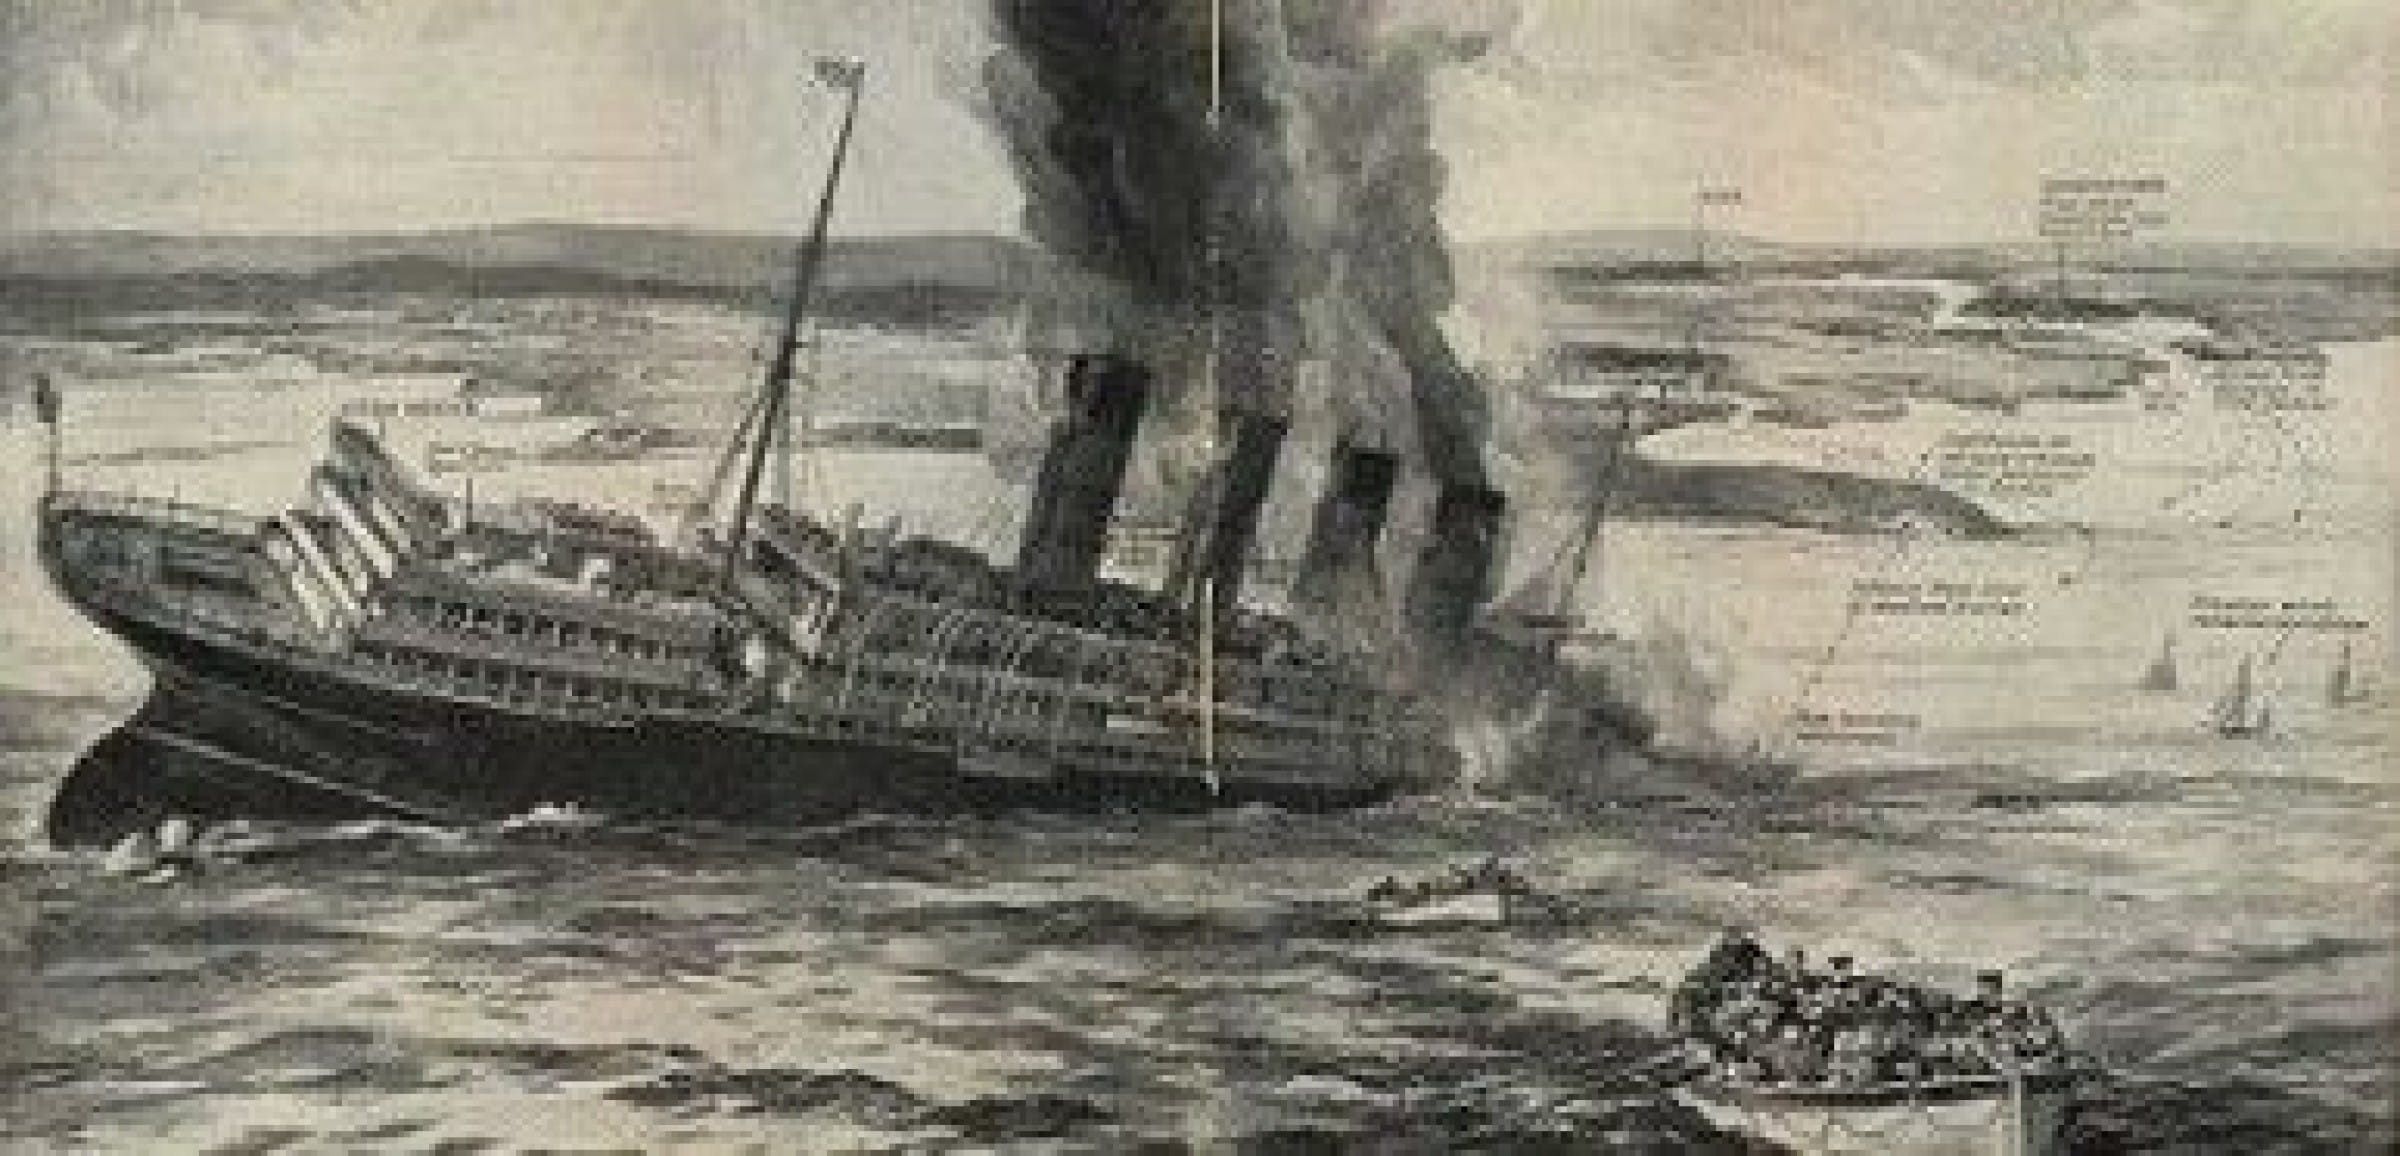 Sinking of The Lusitania (Doomed Lusitania from The Sphere magazine)